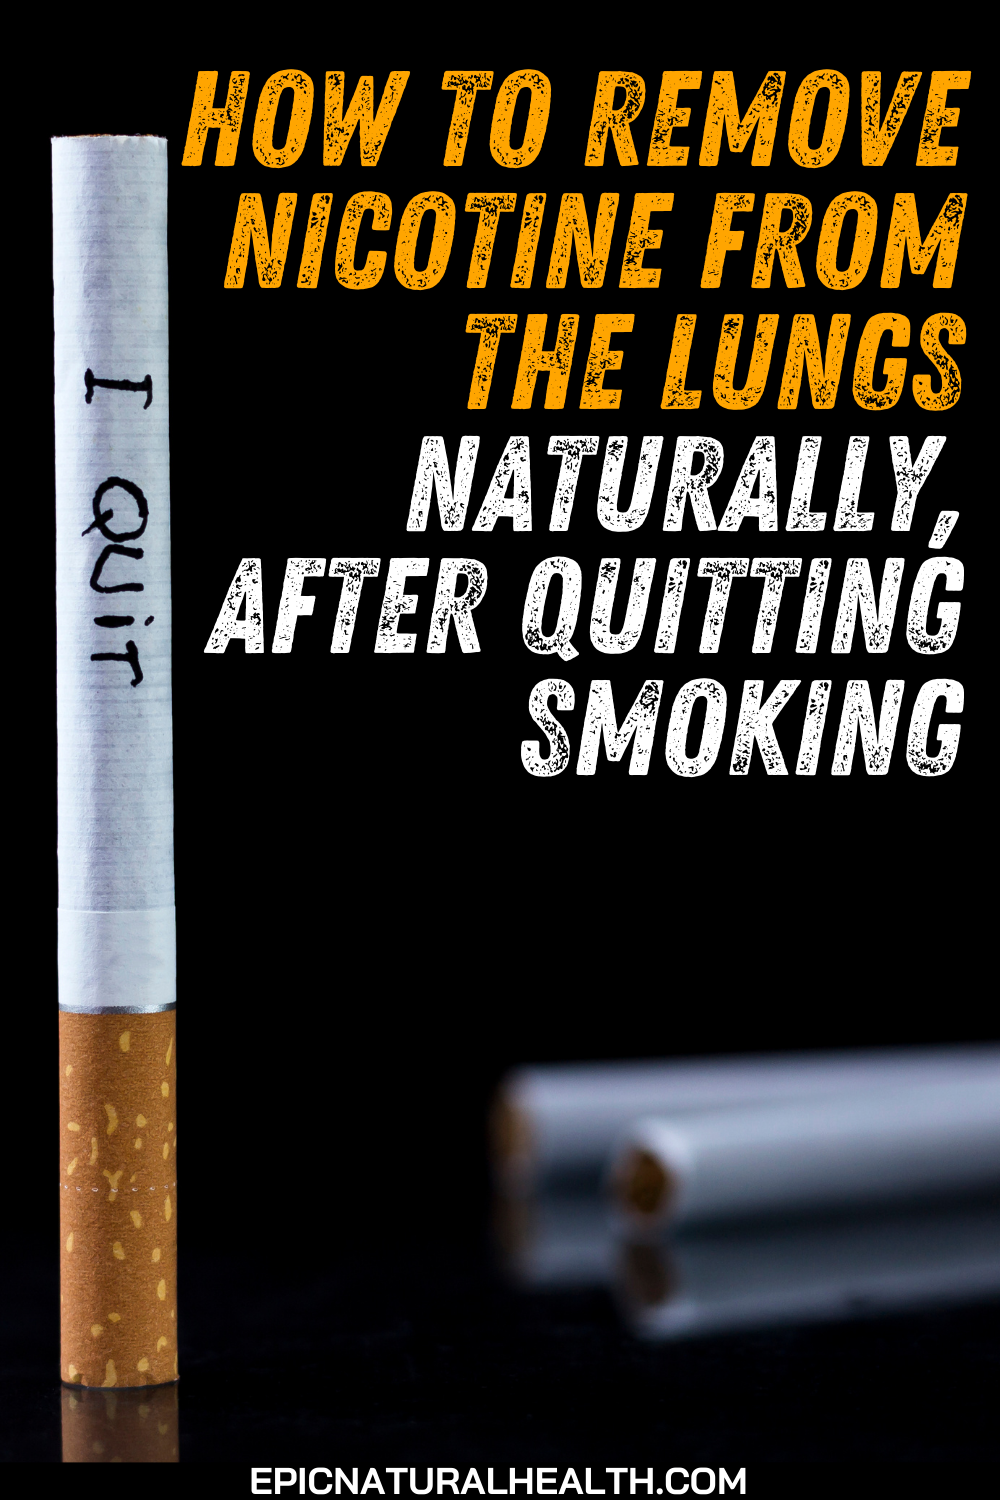 How to remove nicotine from the lungs naturally, after quitting smoking